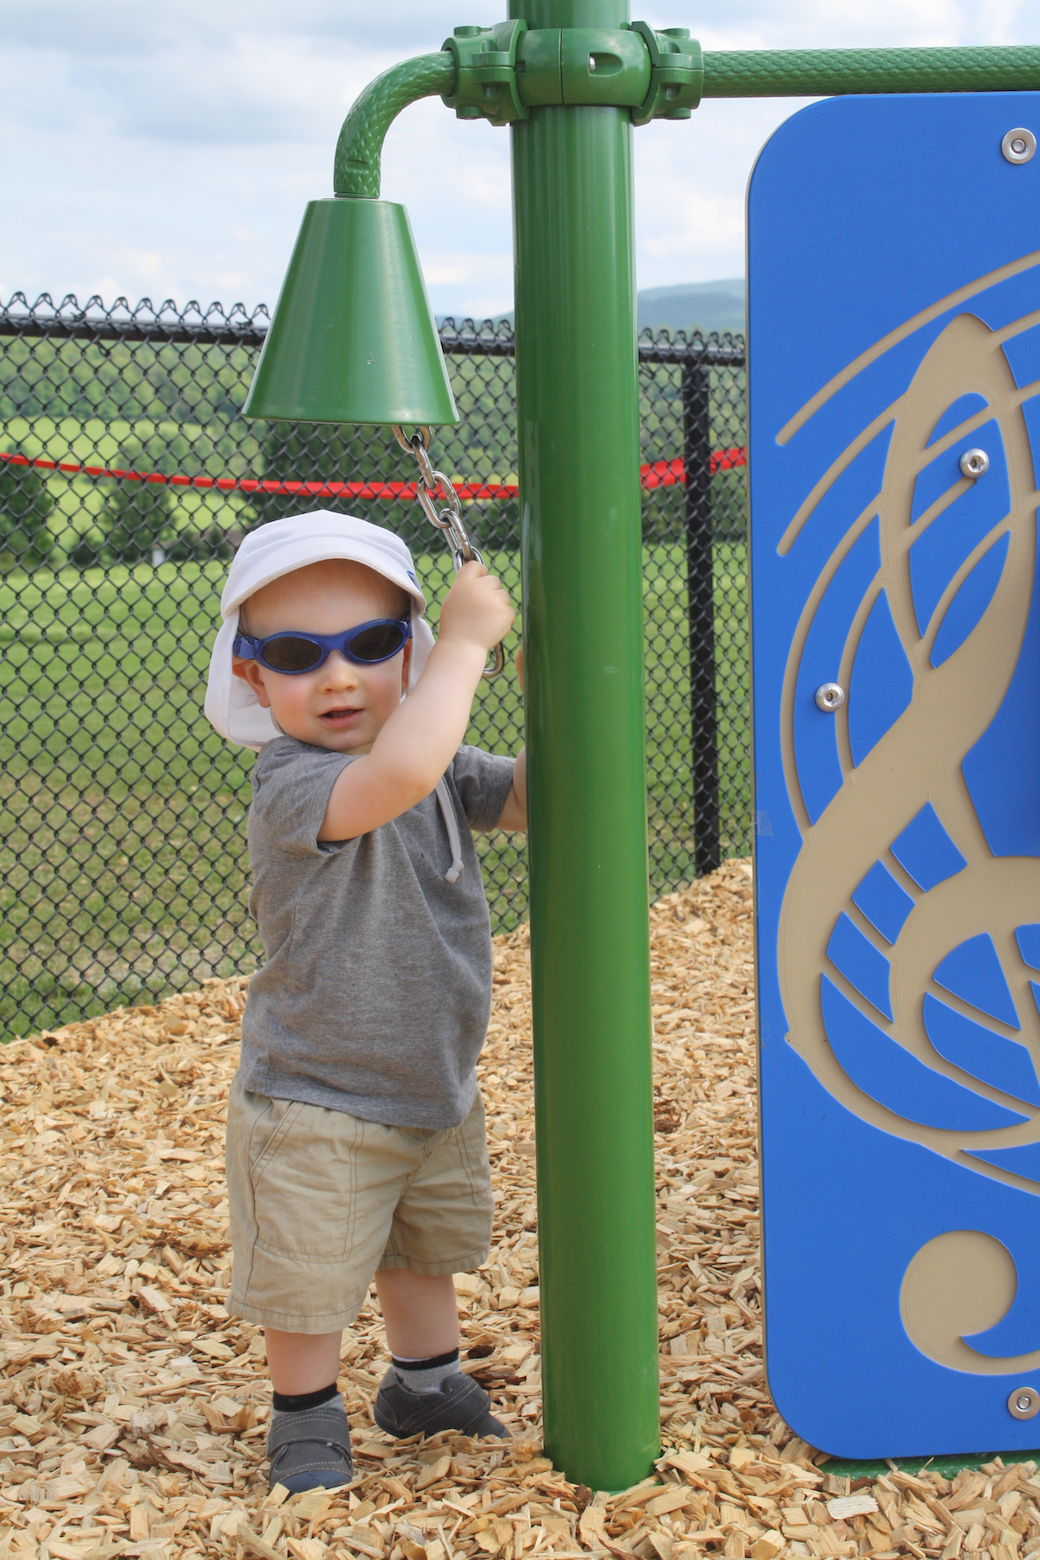 Playing around in Fairfield: School has new playground thanks to community